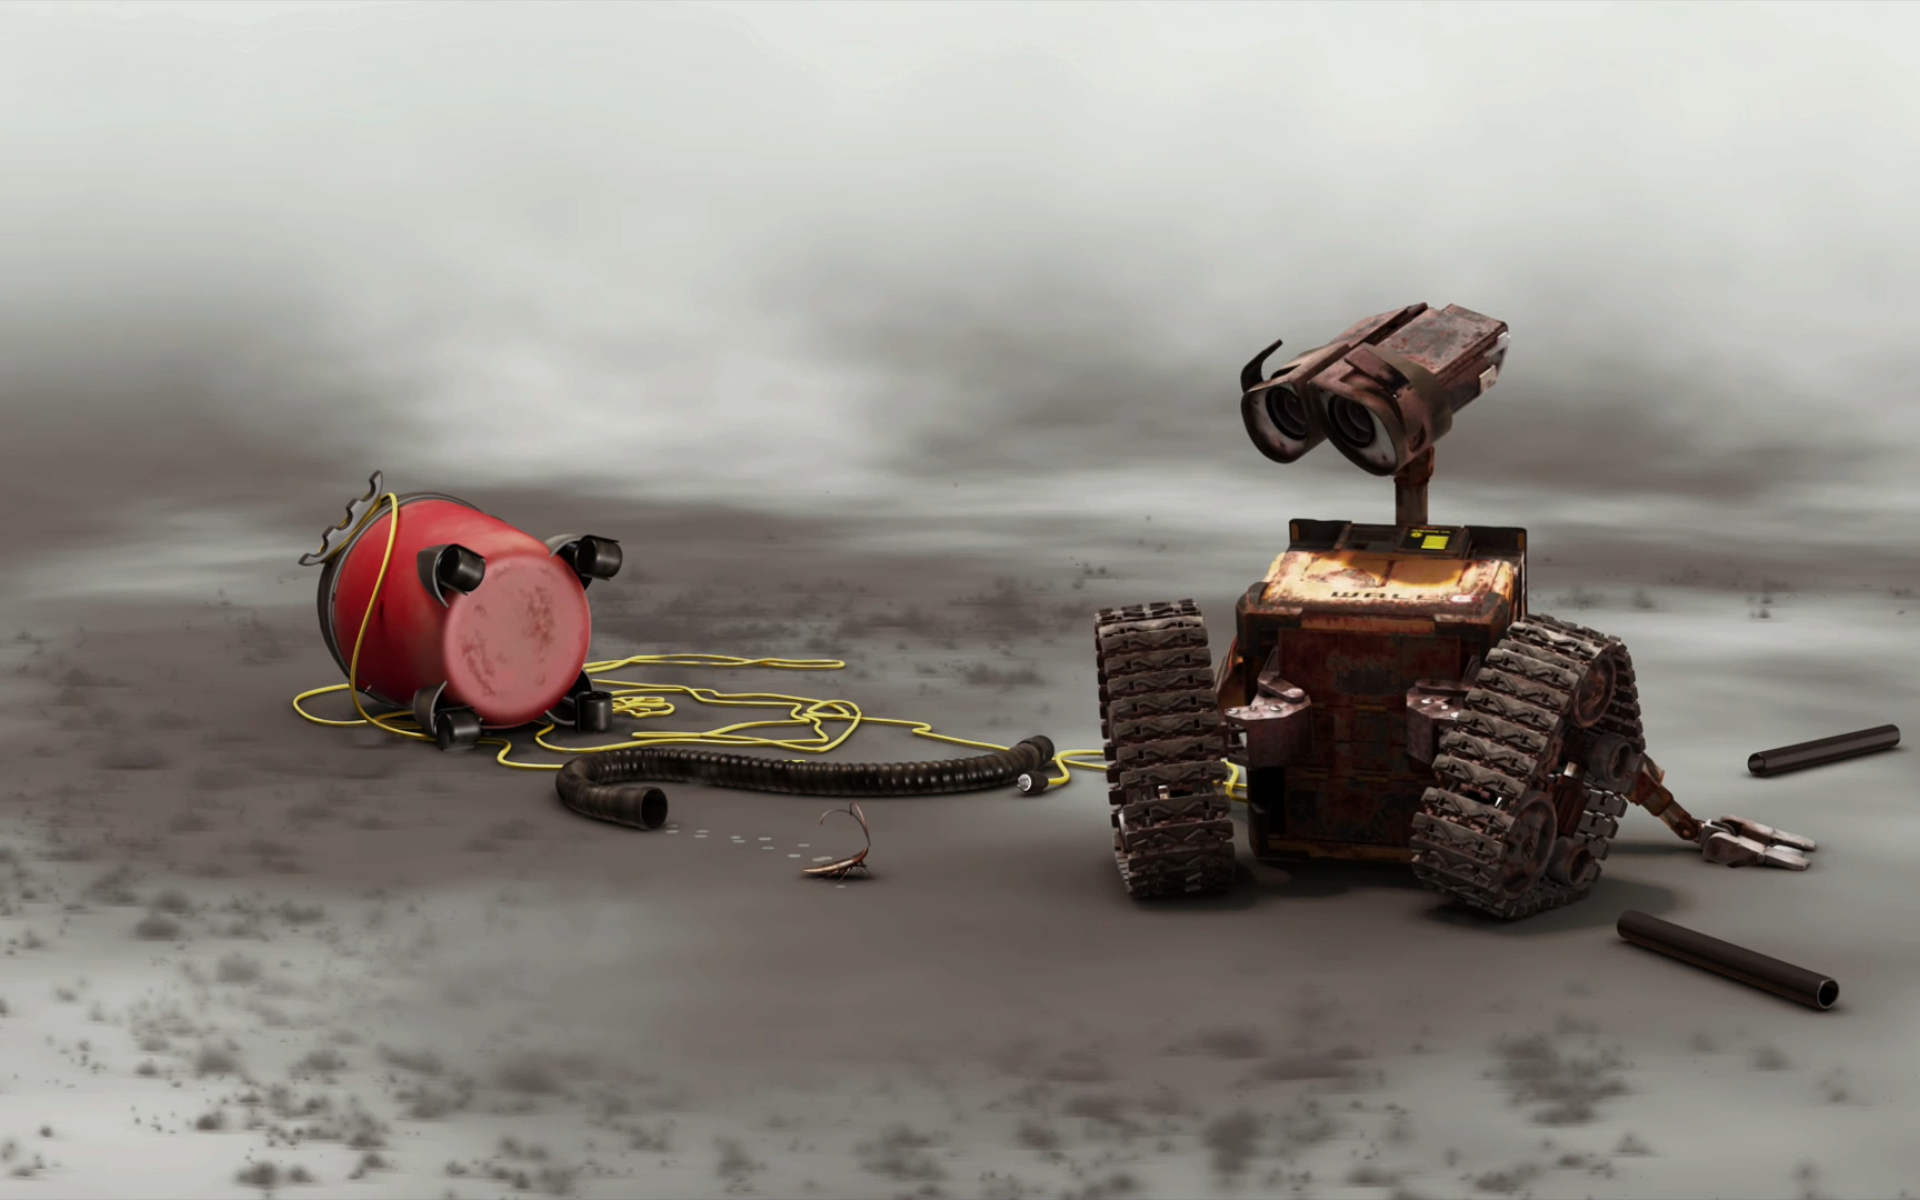 new wall-e best quality amazing hd wallpapers - all hd wallpapers